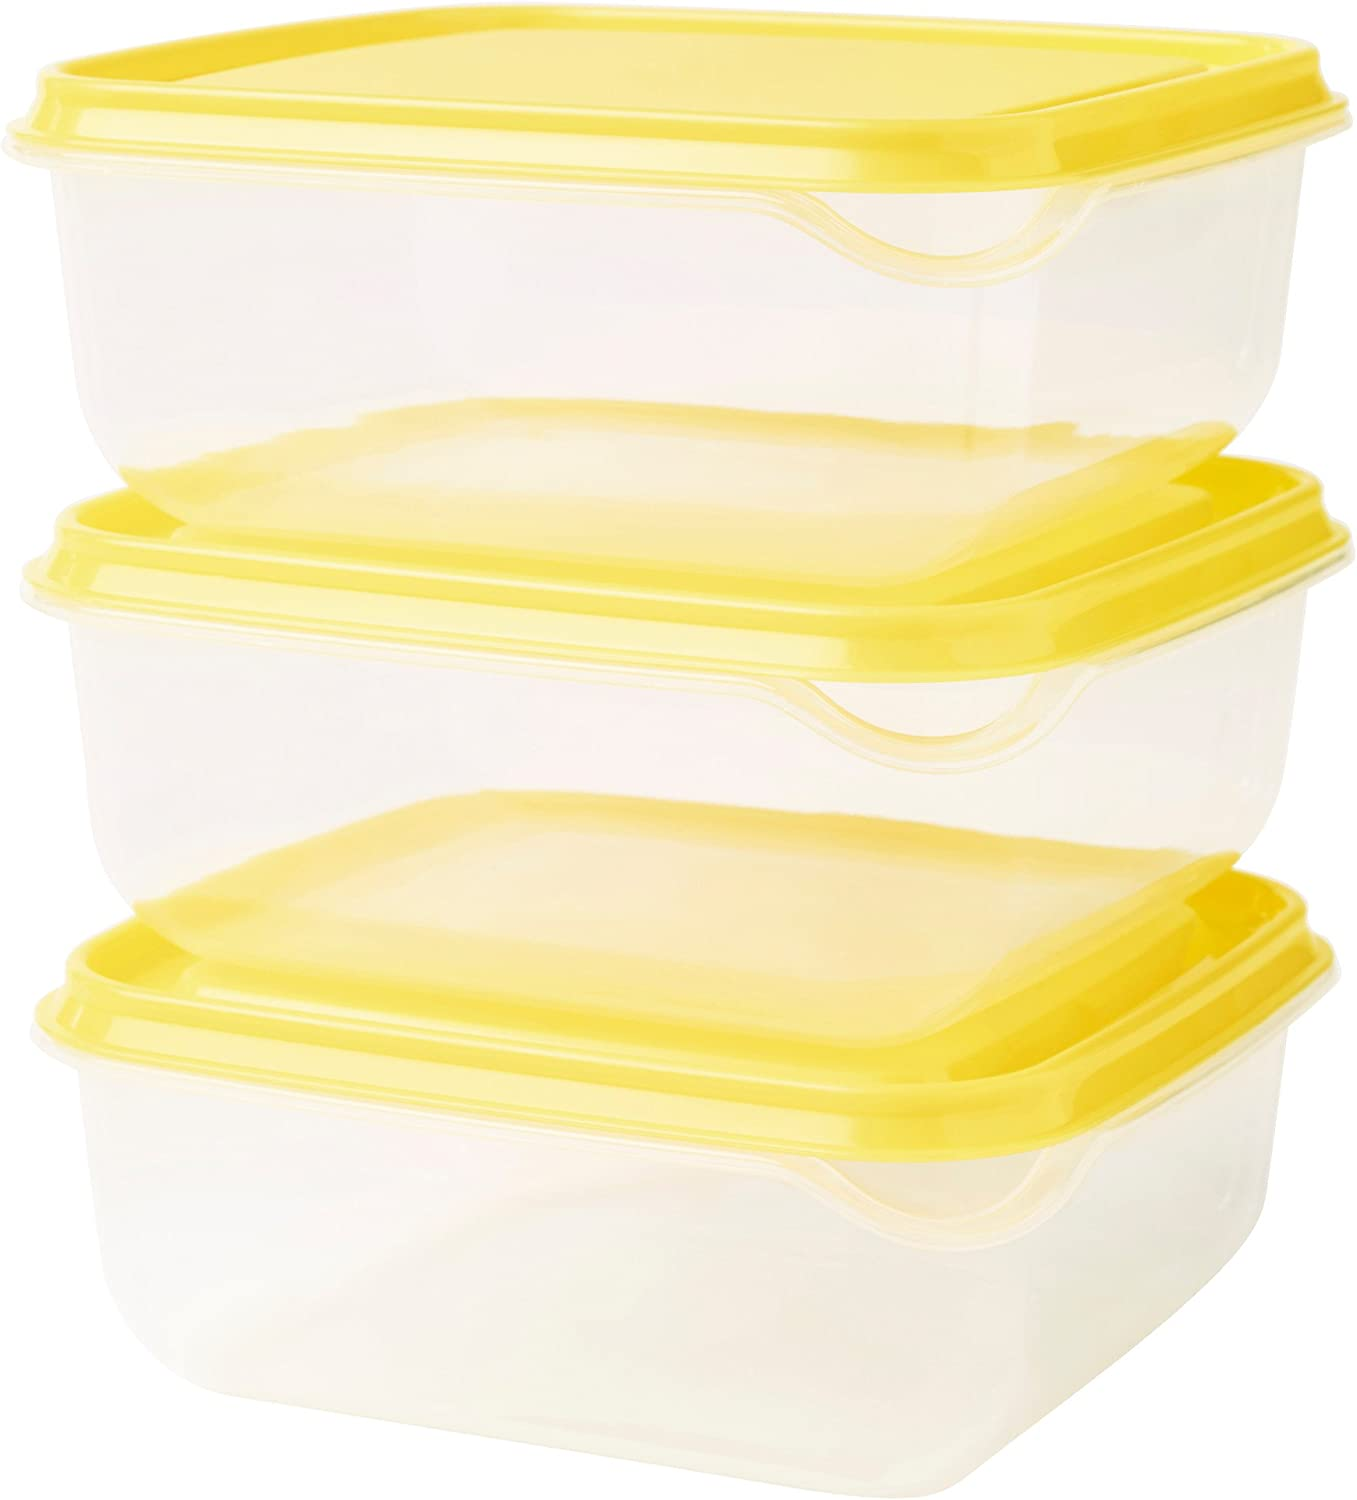 Amazon Com Ikea Pruta Food Storage Square 14x14x2 25 Container 20 Oz 6 Pack Bpa Free Plastic Clear Container Yellow Lid Kitchen Dining